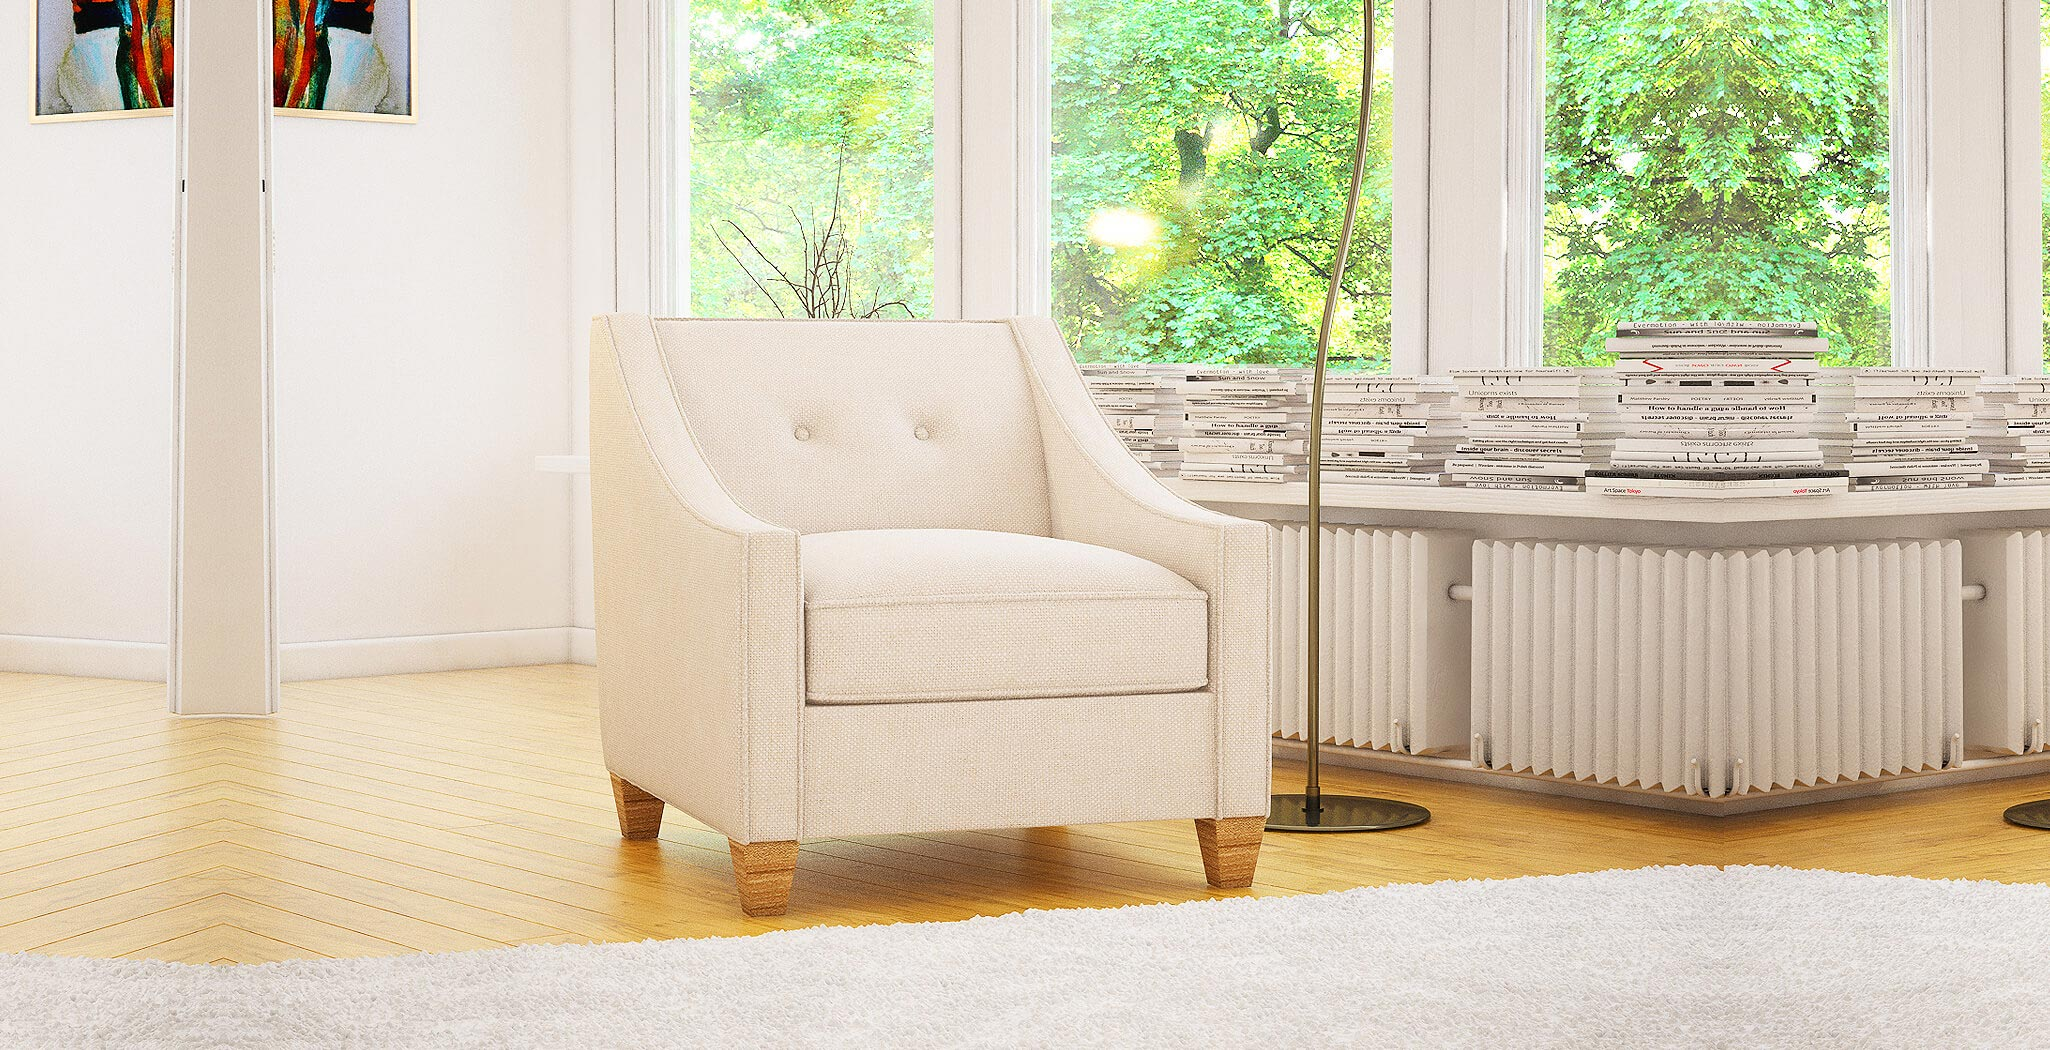 berlin chair premium furiture DreamSofa